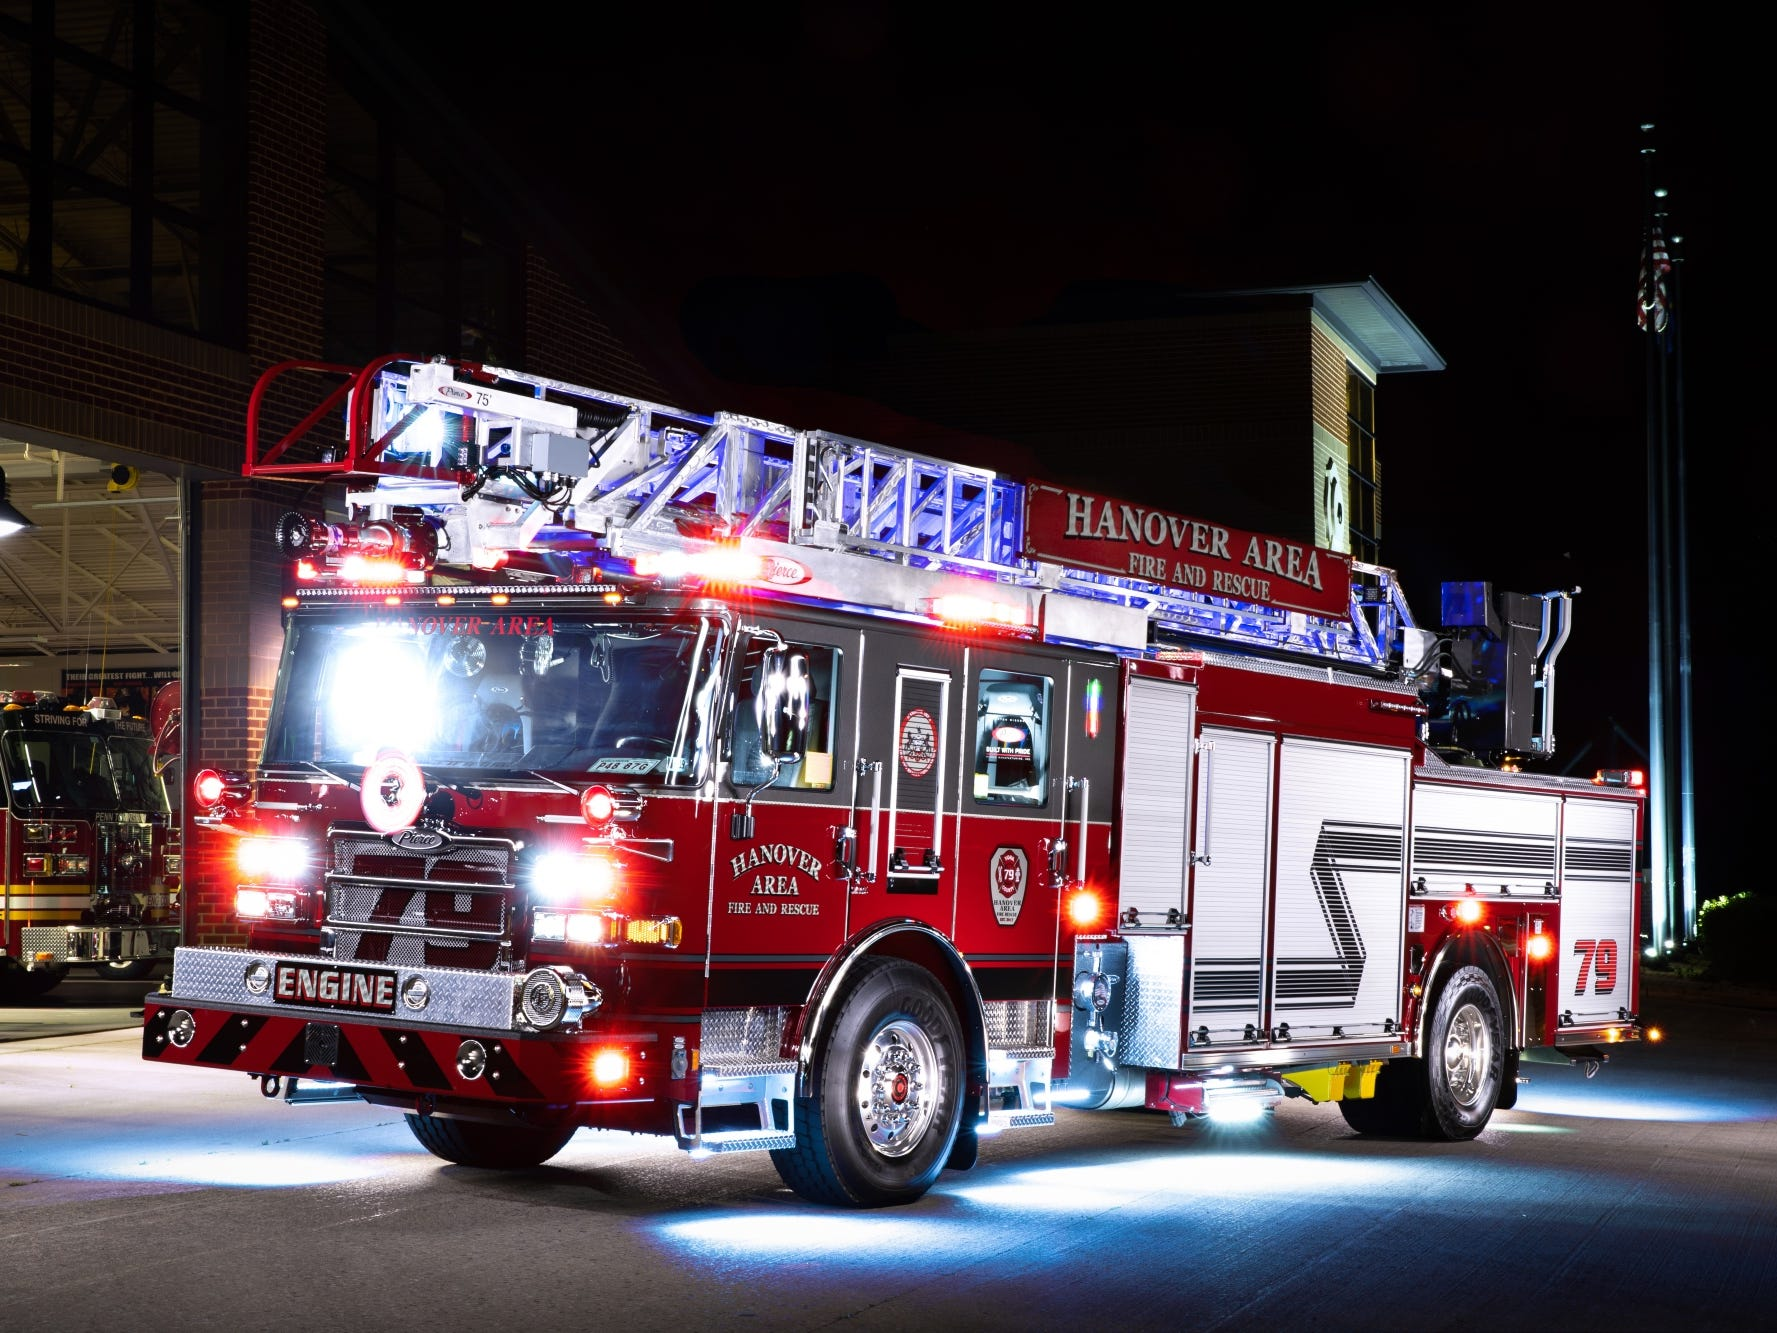 "In a composite ""light painting"" image created from stitching together 16 images in which a LED light was shined across portions of the image, Hanover Area Fire & Rescue's new Engine 79-2 sits on display in front of the Clover Lane station, Thursday, June 22, 2018 in Penn Township. The new engine is expected to go into service in early August, according to Hanover Area Fire & Rescue Captain Kevin Adams."